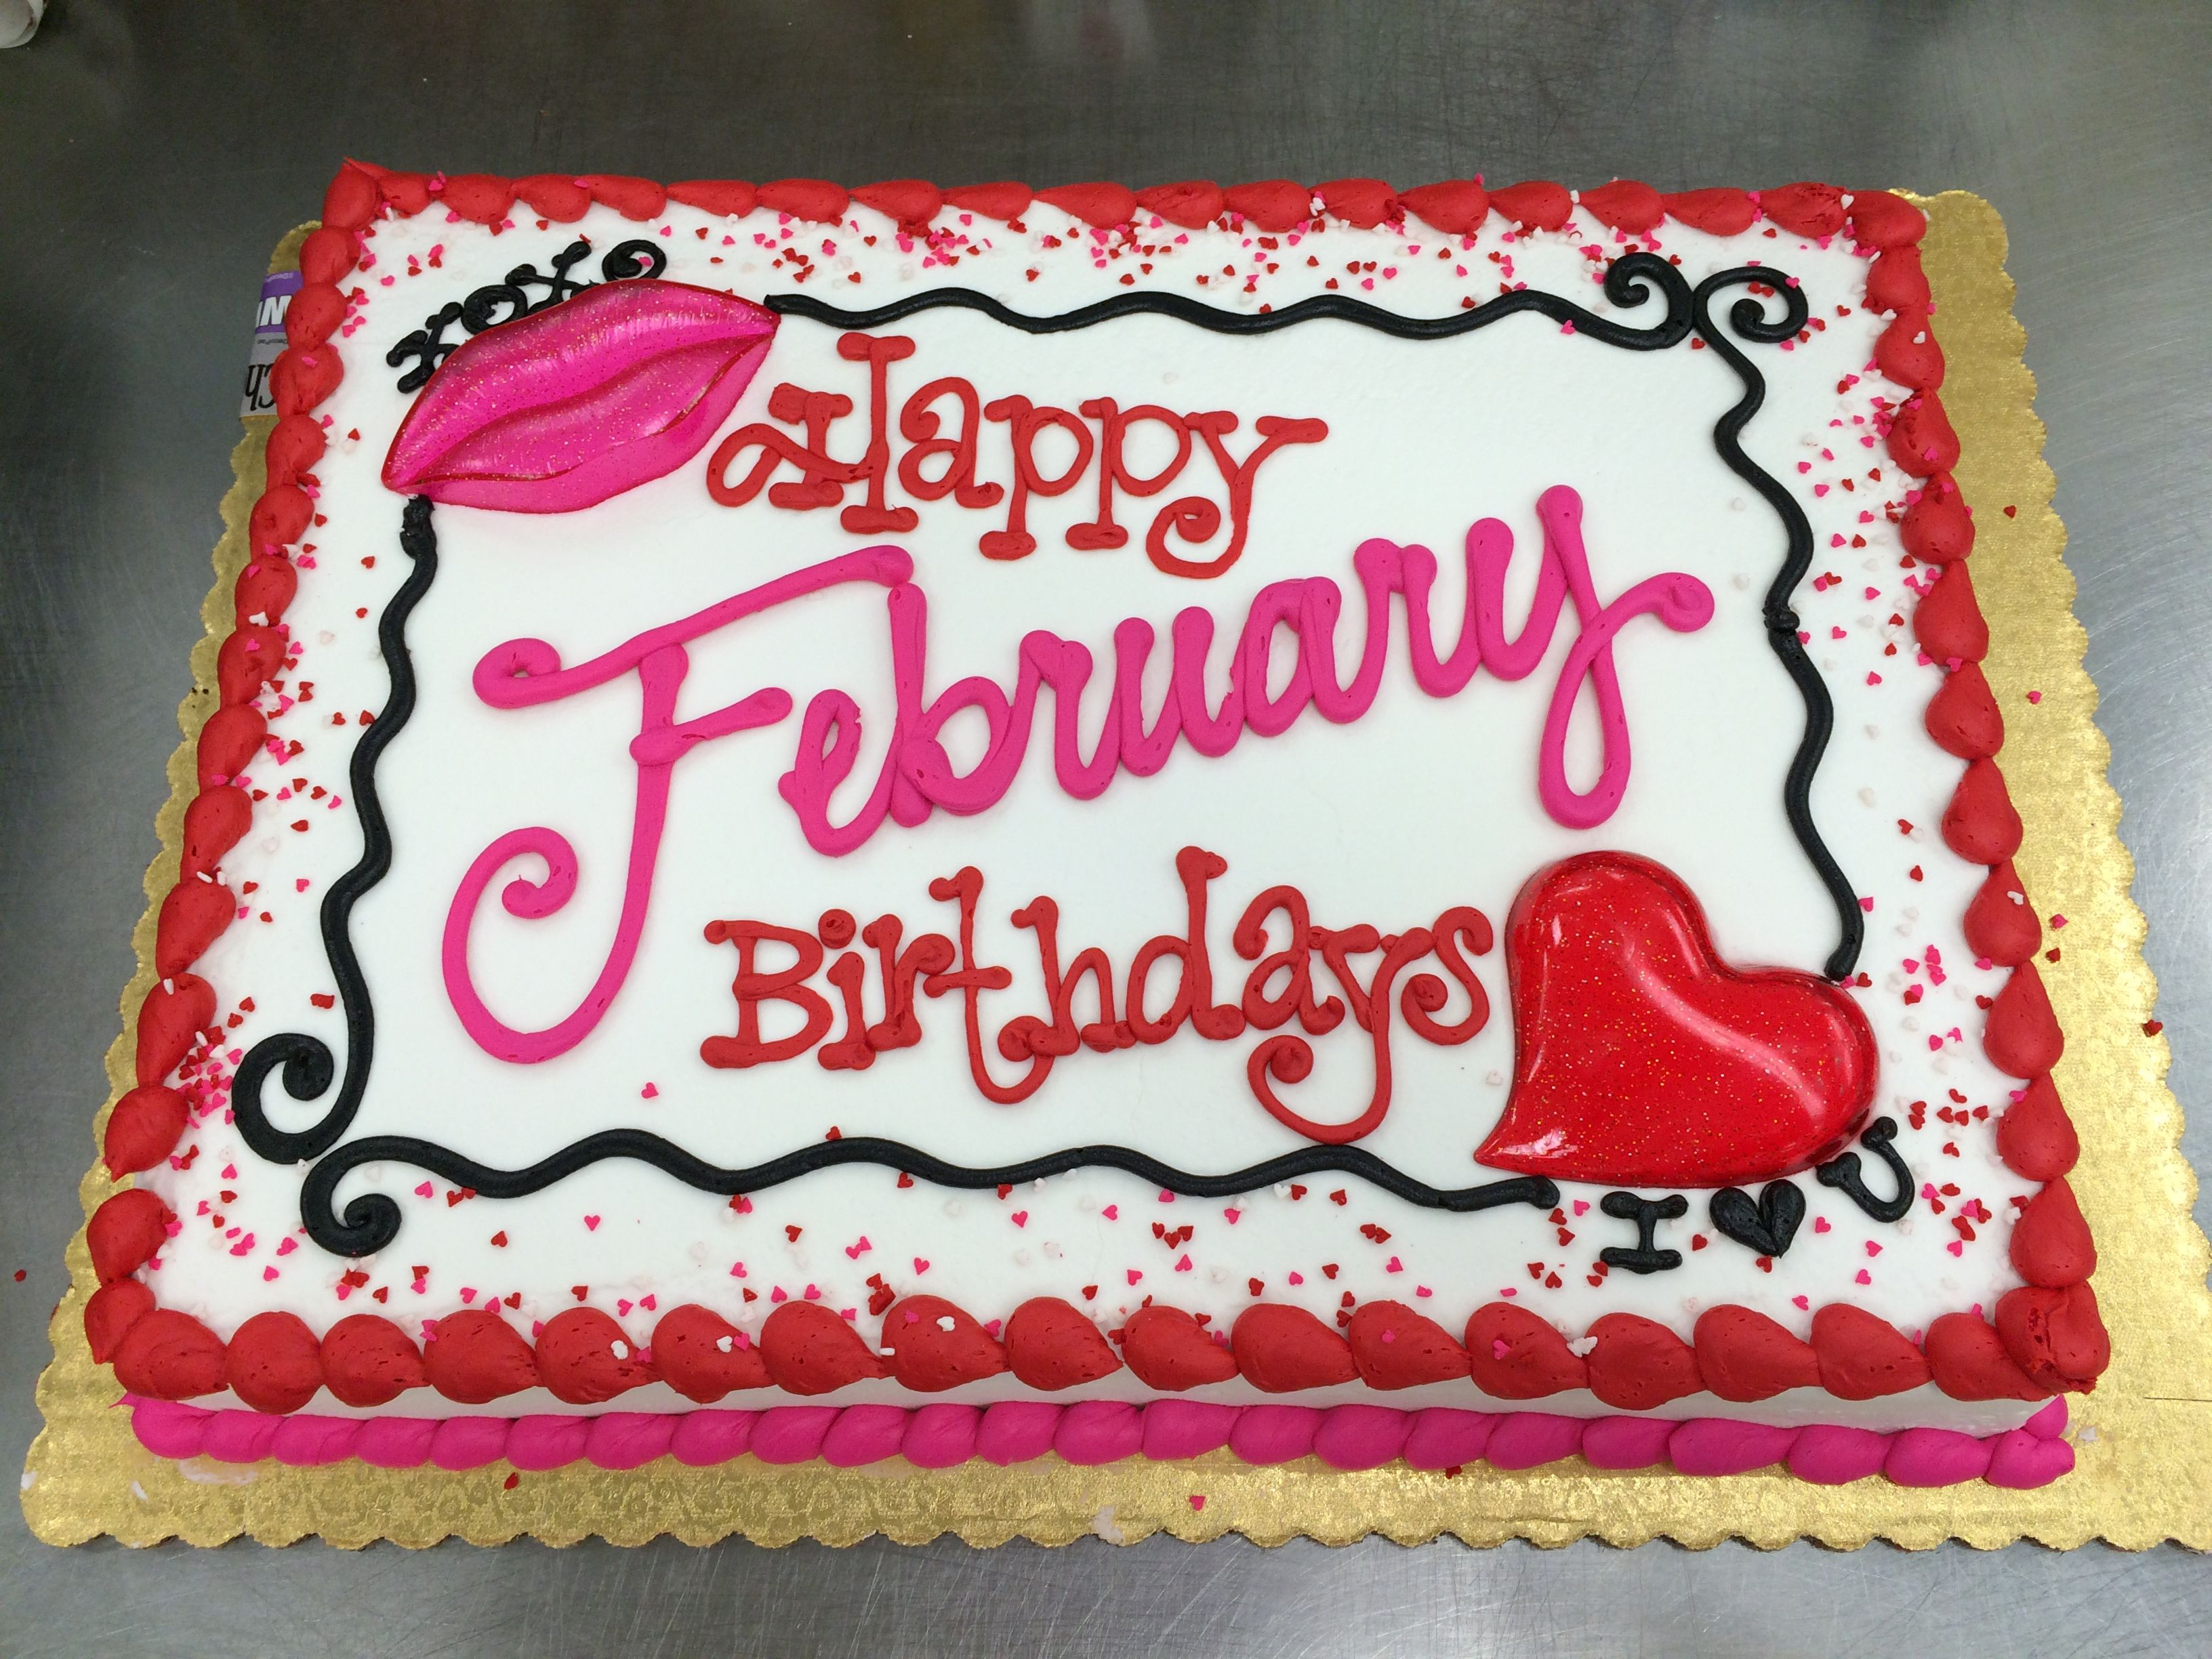 Happy February Birthday Cake By Stephanie Dillon LS1 Hy Vee